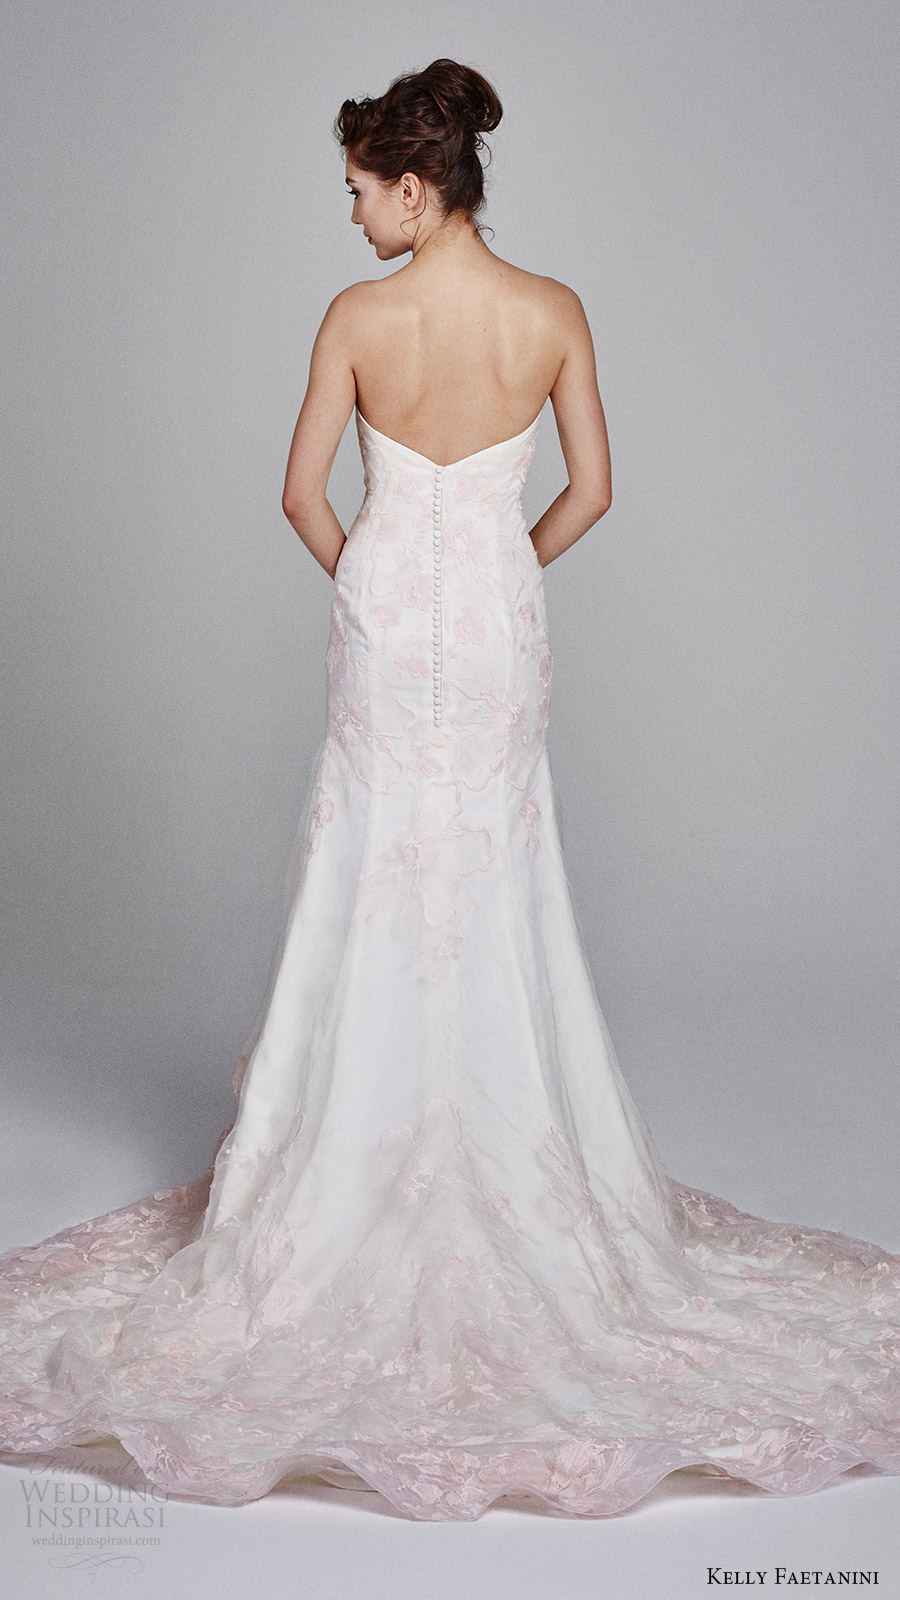 kelly faetanini bridal fall 2017 strapless sweetheart trumpet wedding dress (cherie) bv blush pink embroidery back buttons train